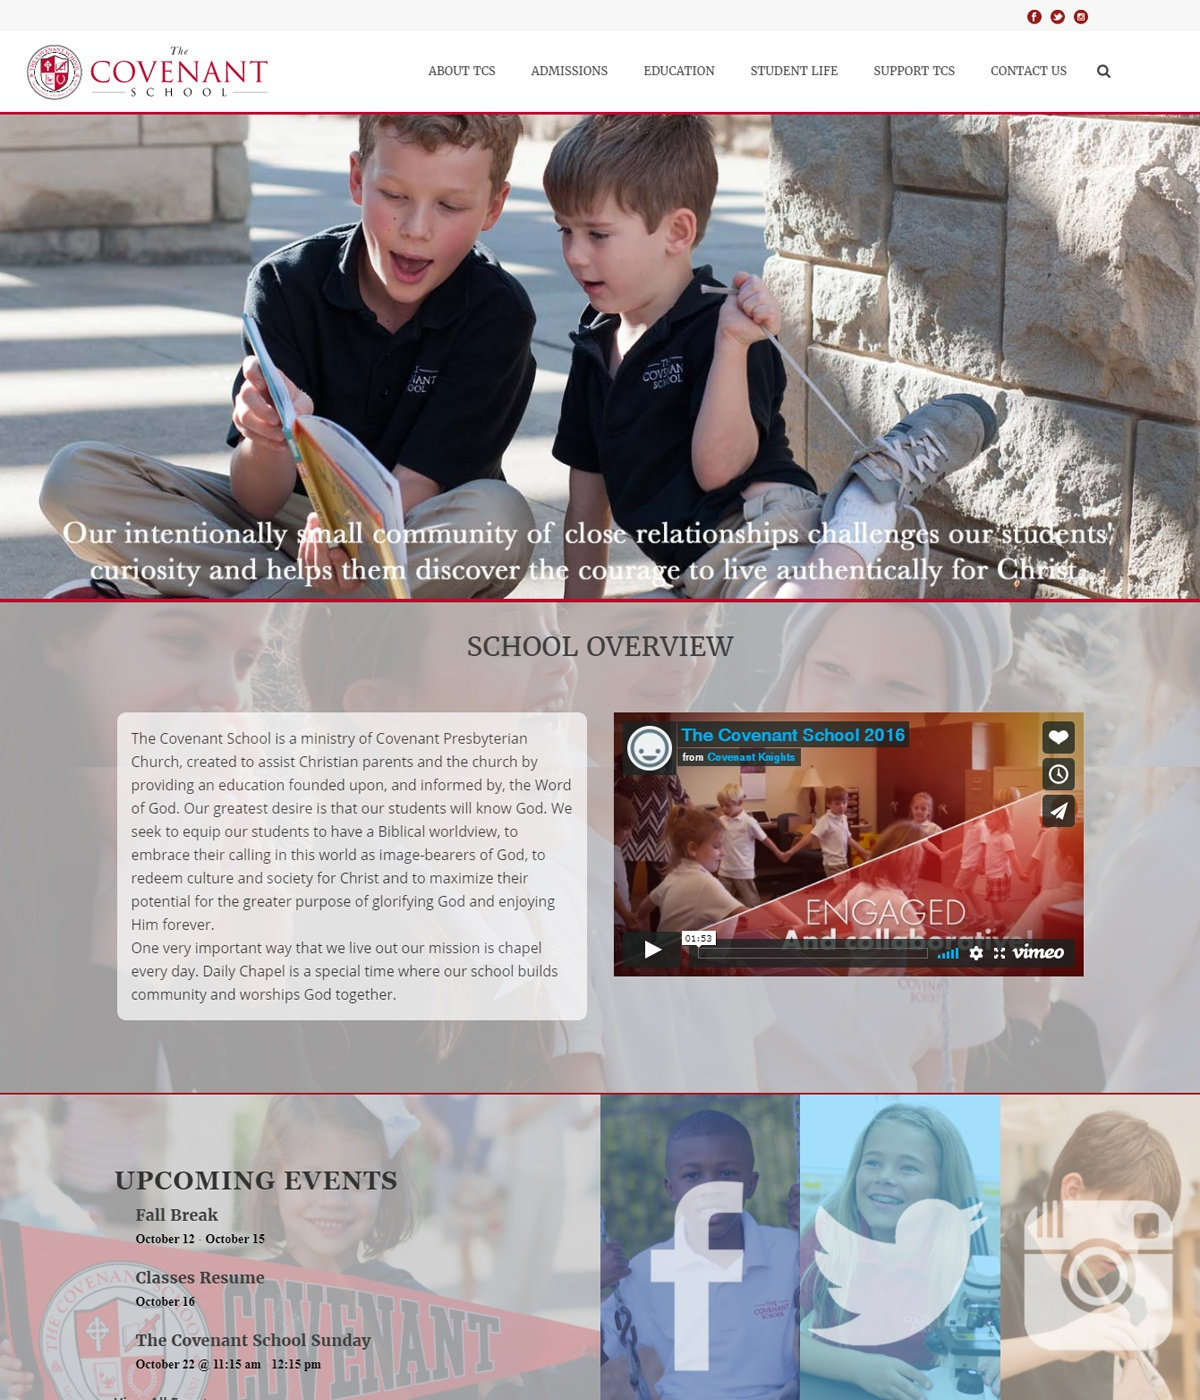 Private School Website Design